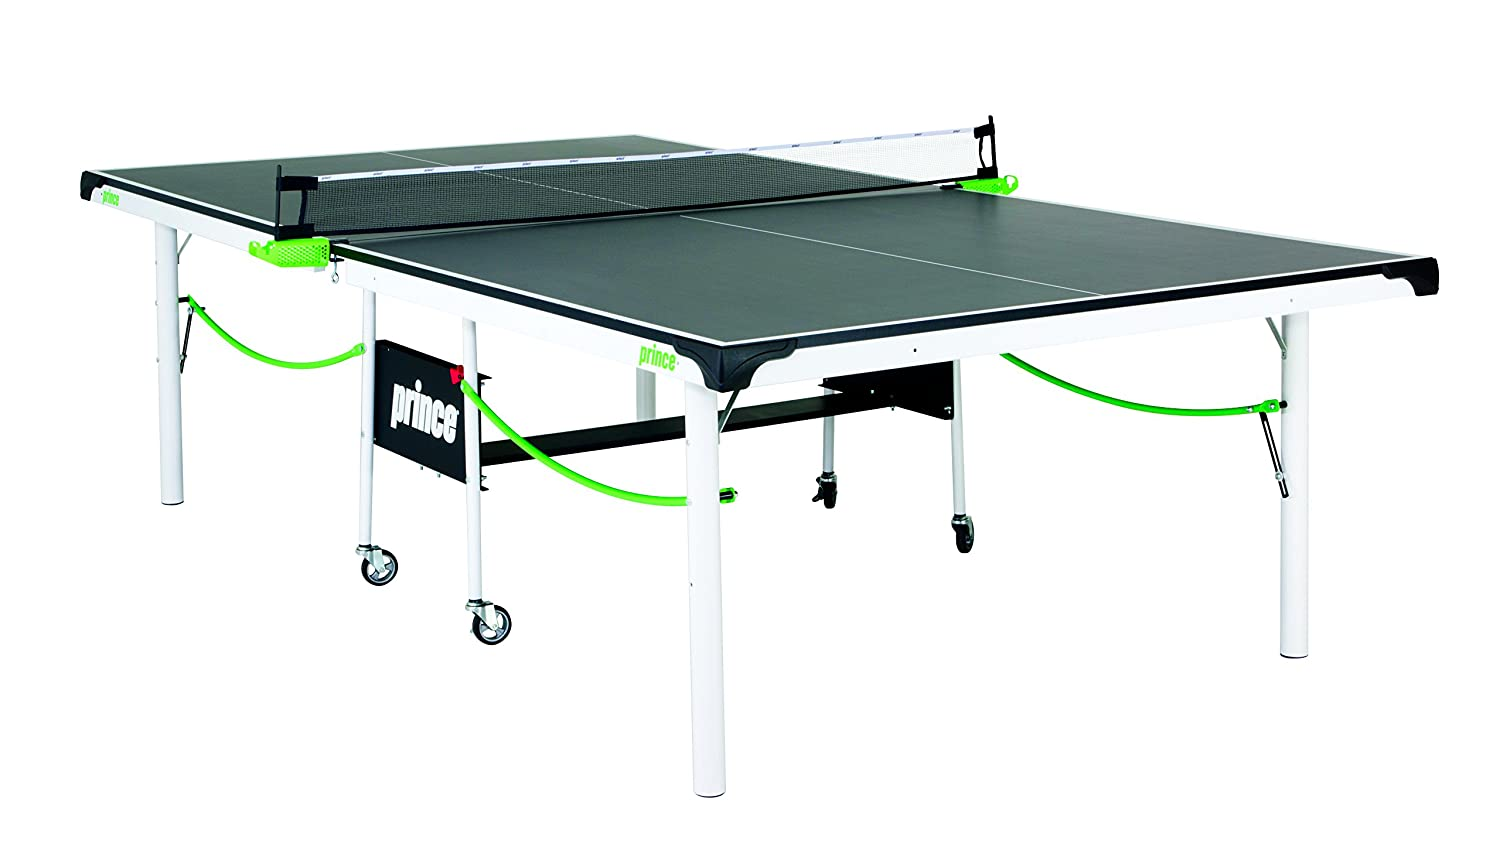 Amazon.com : Prince Fusion Elite Table Tennis Table : Sports U0026 Outdoors